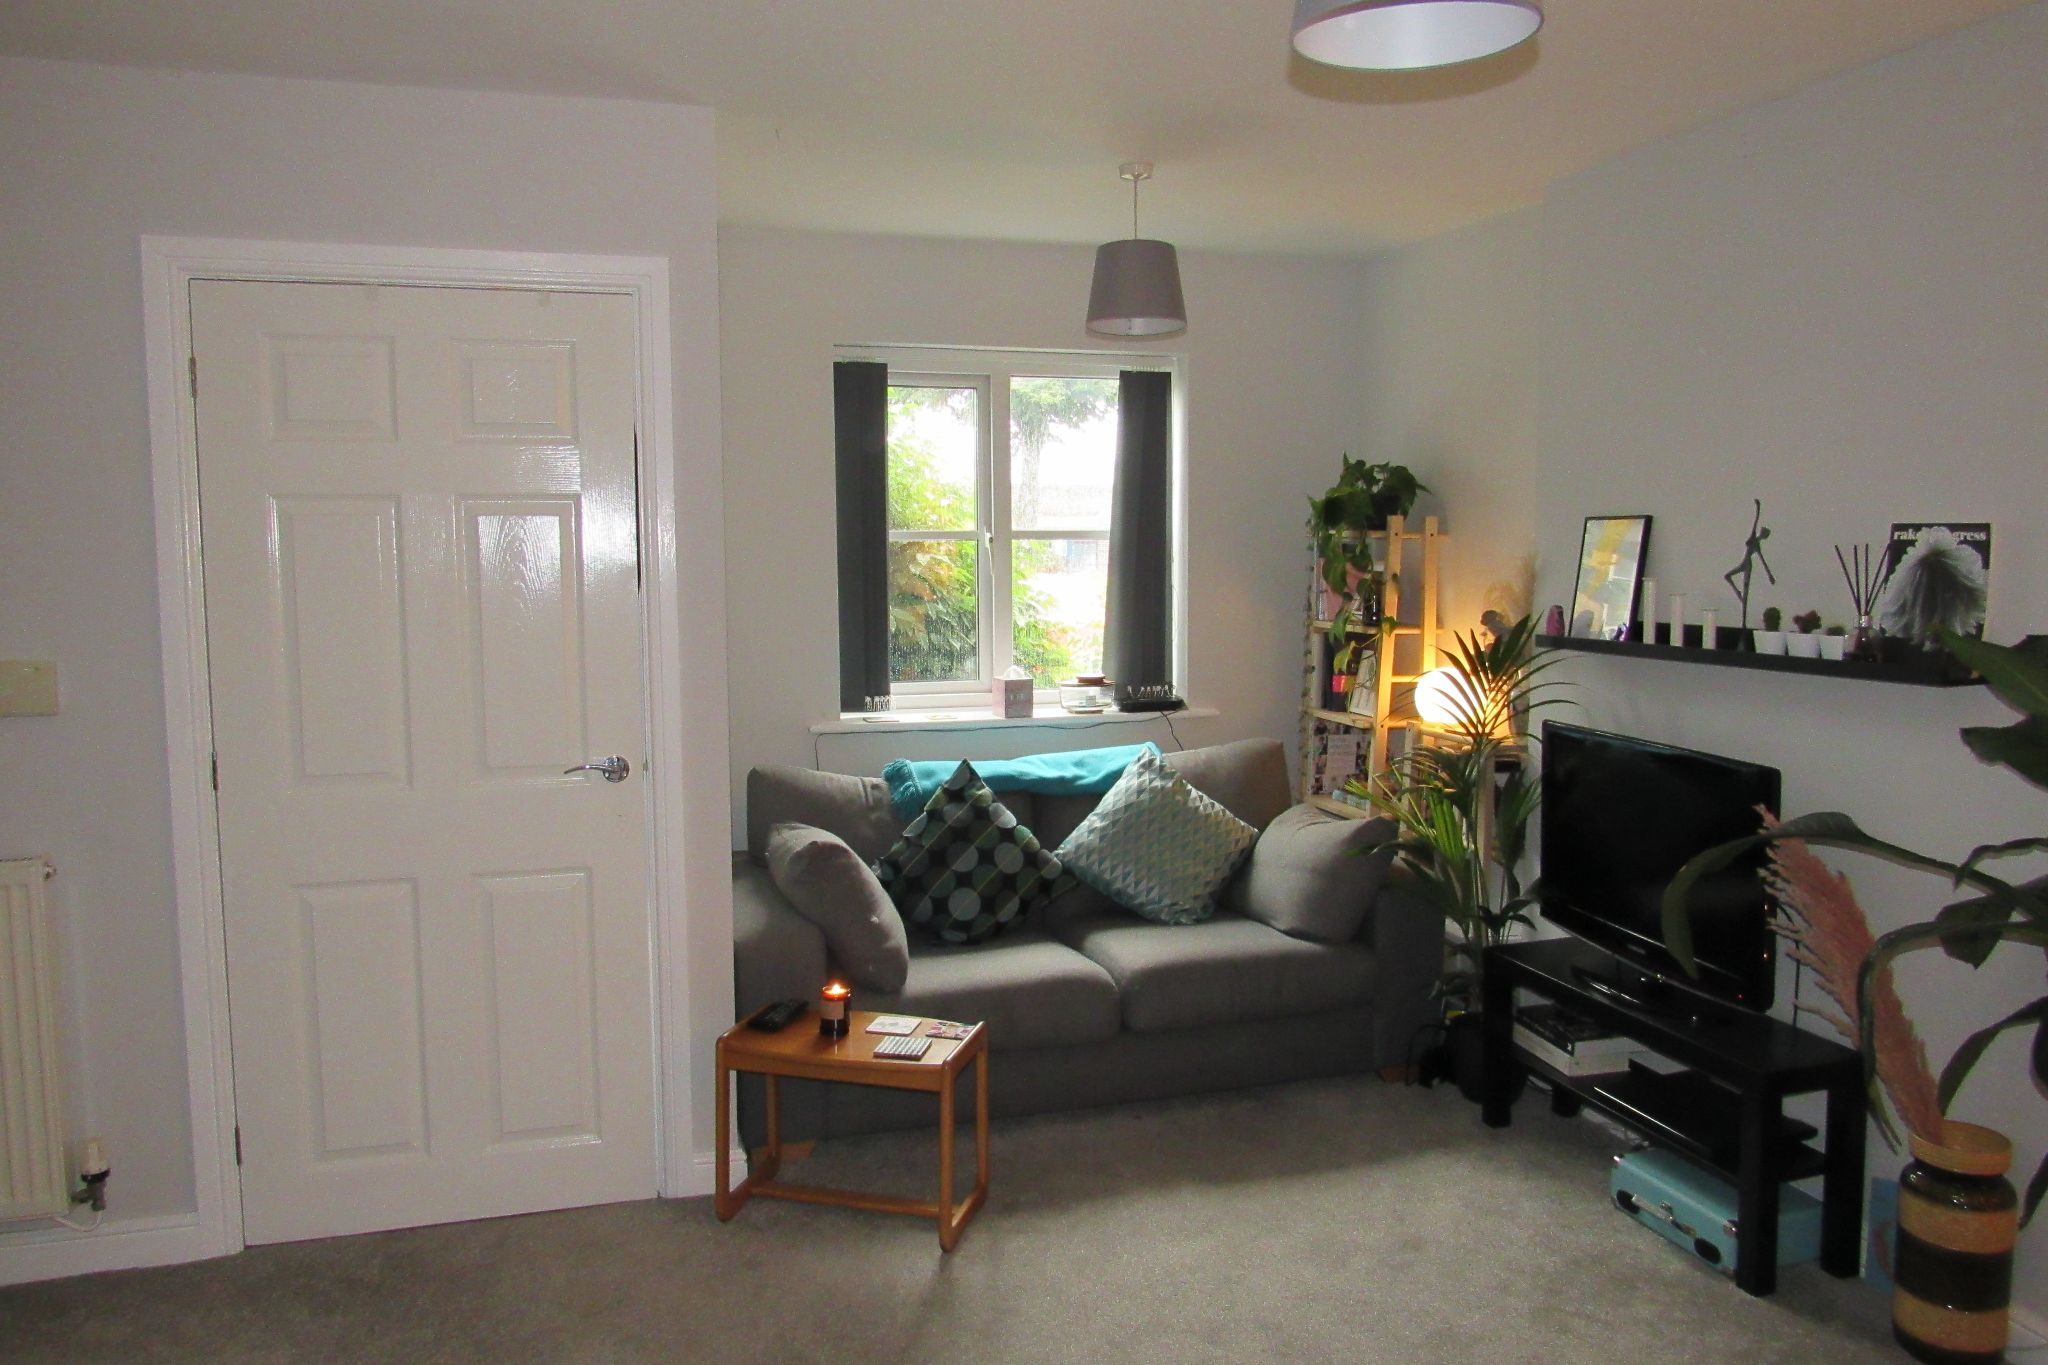 2 bedroom mid terraced house SSTC in Manchester - Photograph 5.